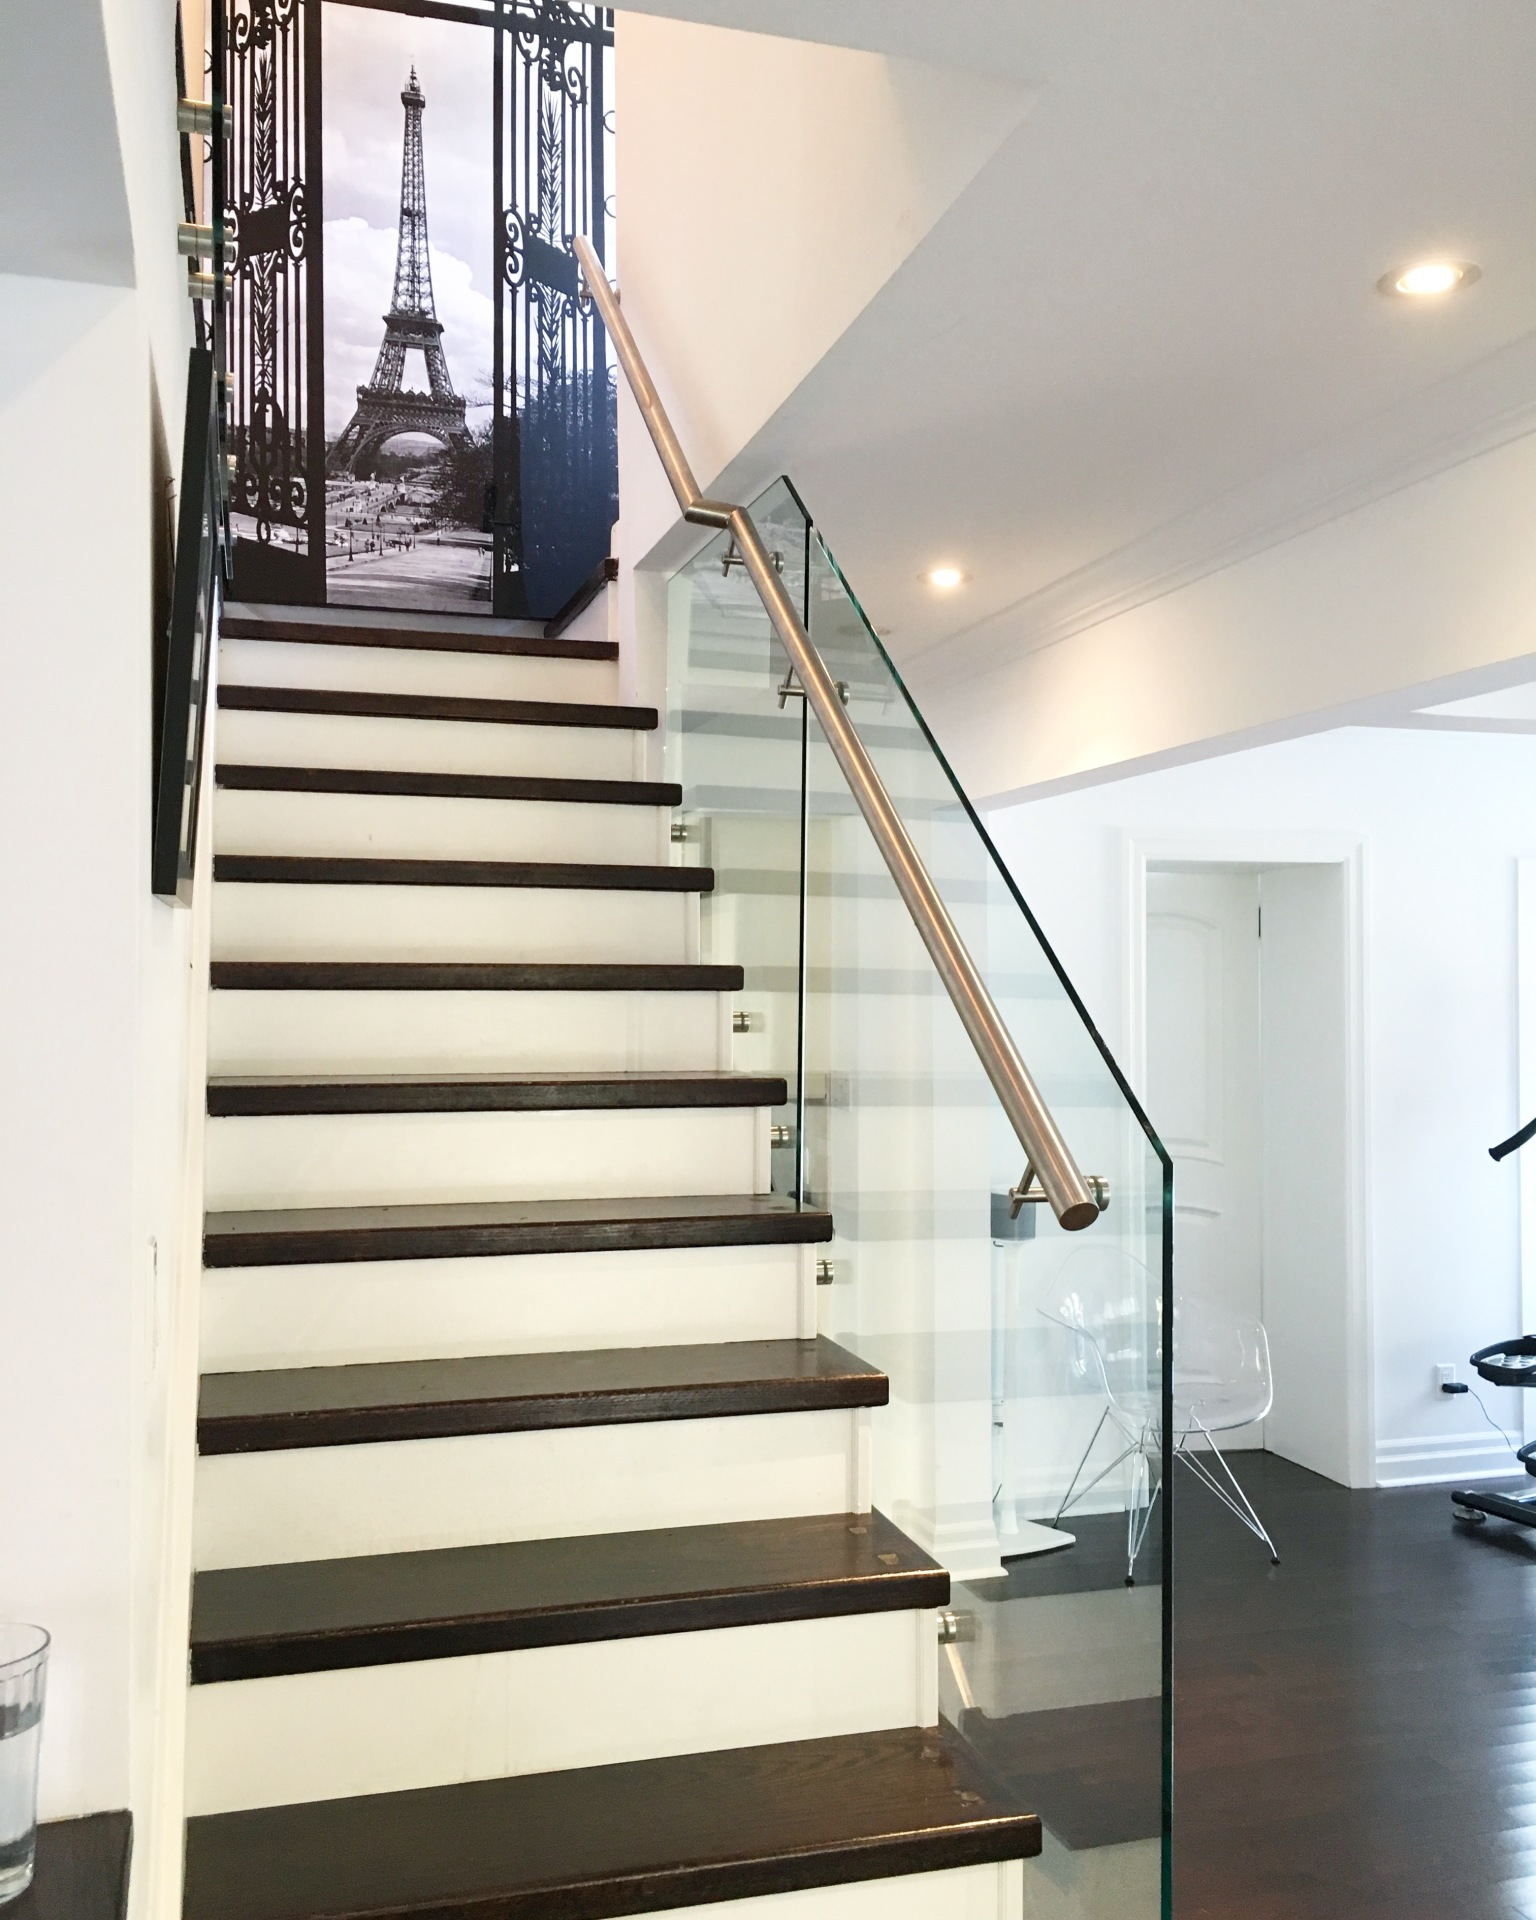 Glass railing handrail